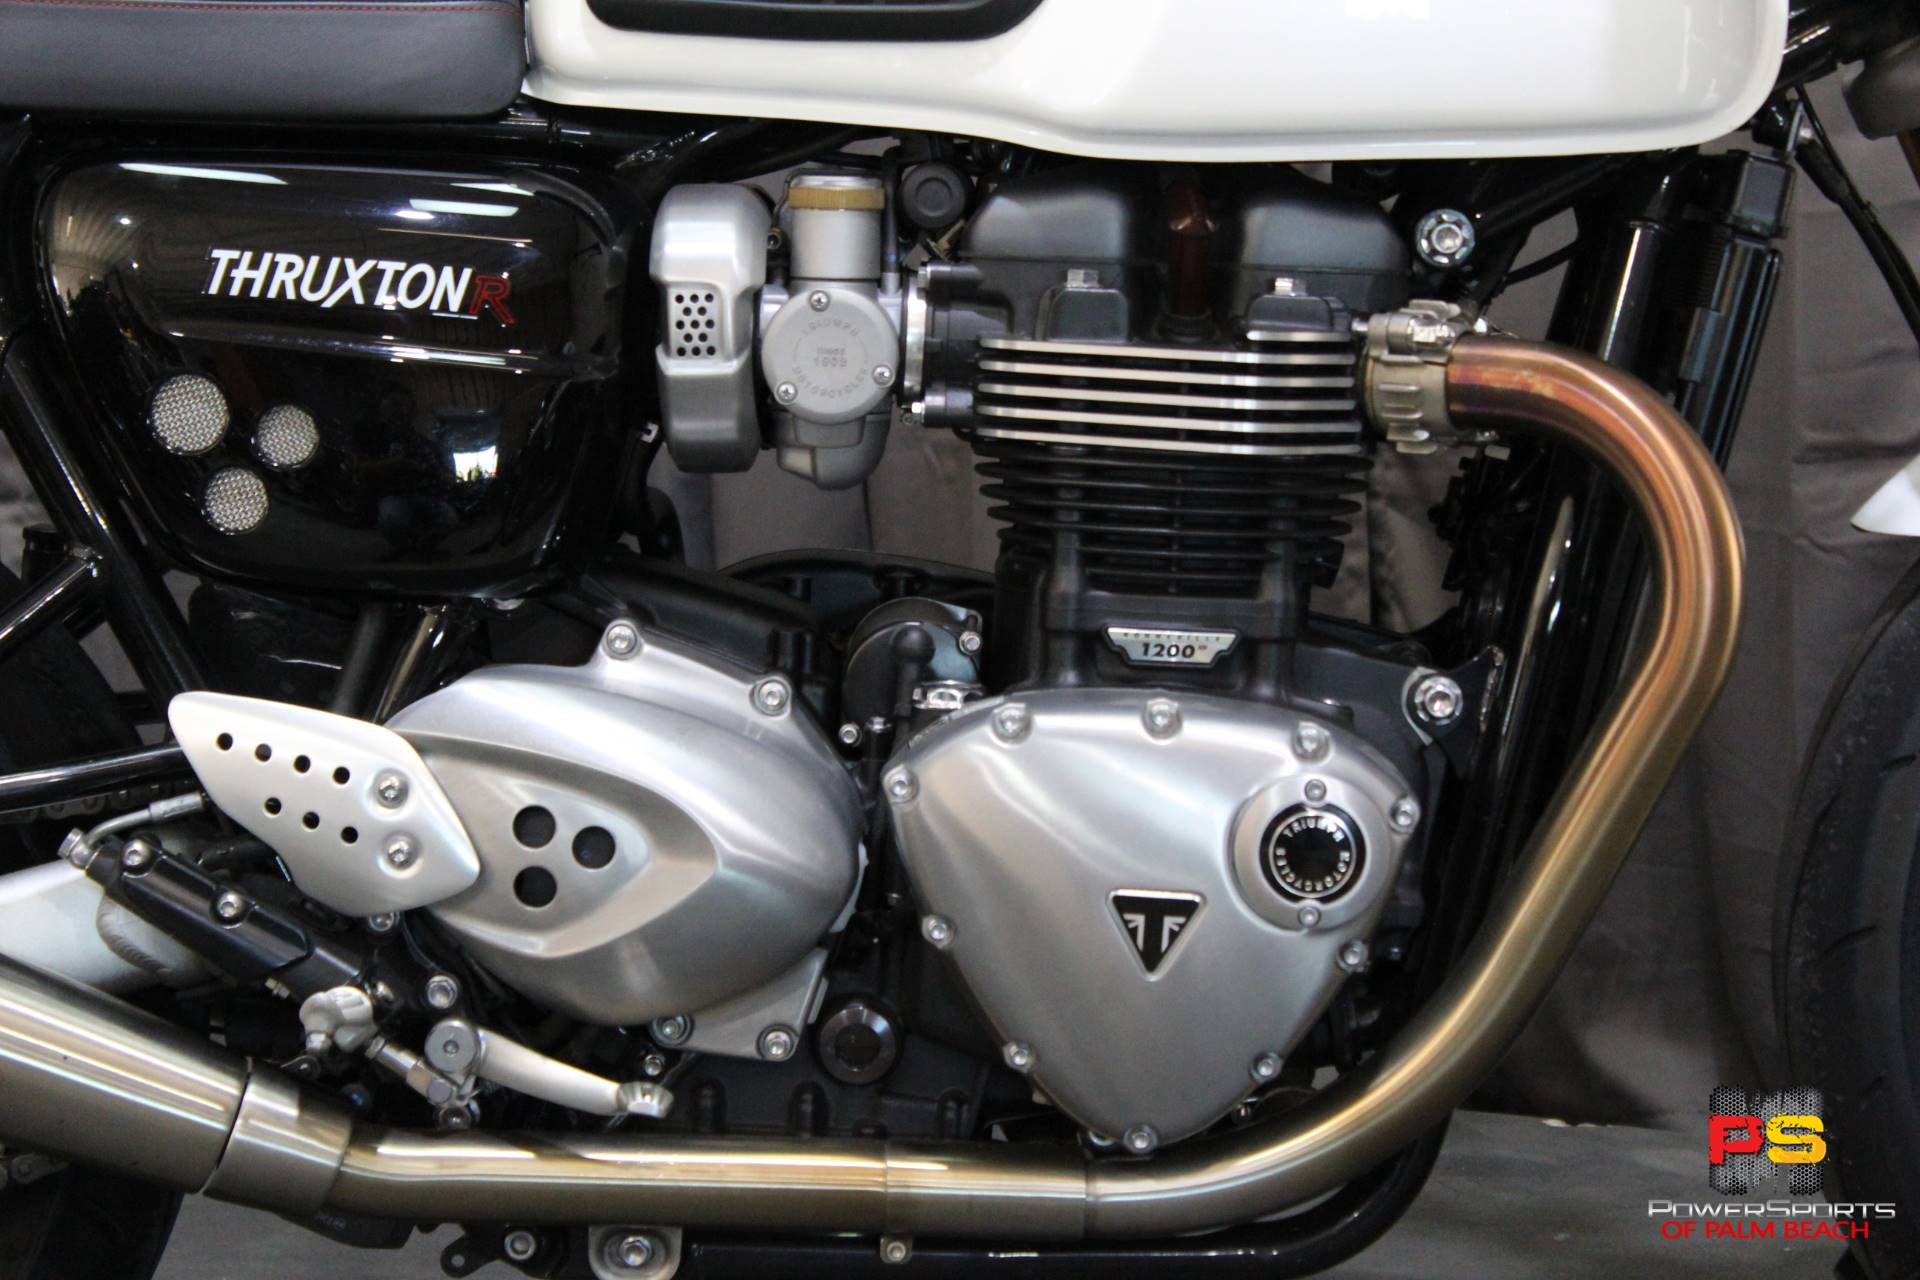 2018 Triumph Thruxton 1200 R in Lake Park, Florida - Photo 4